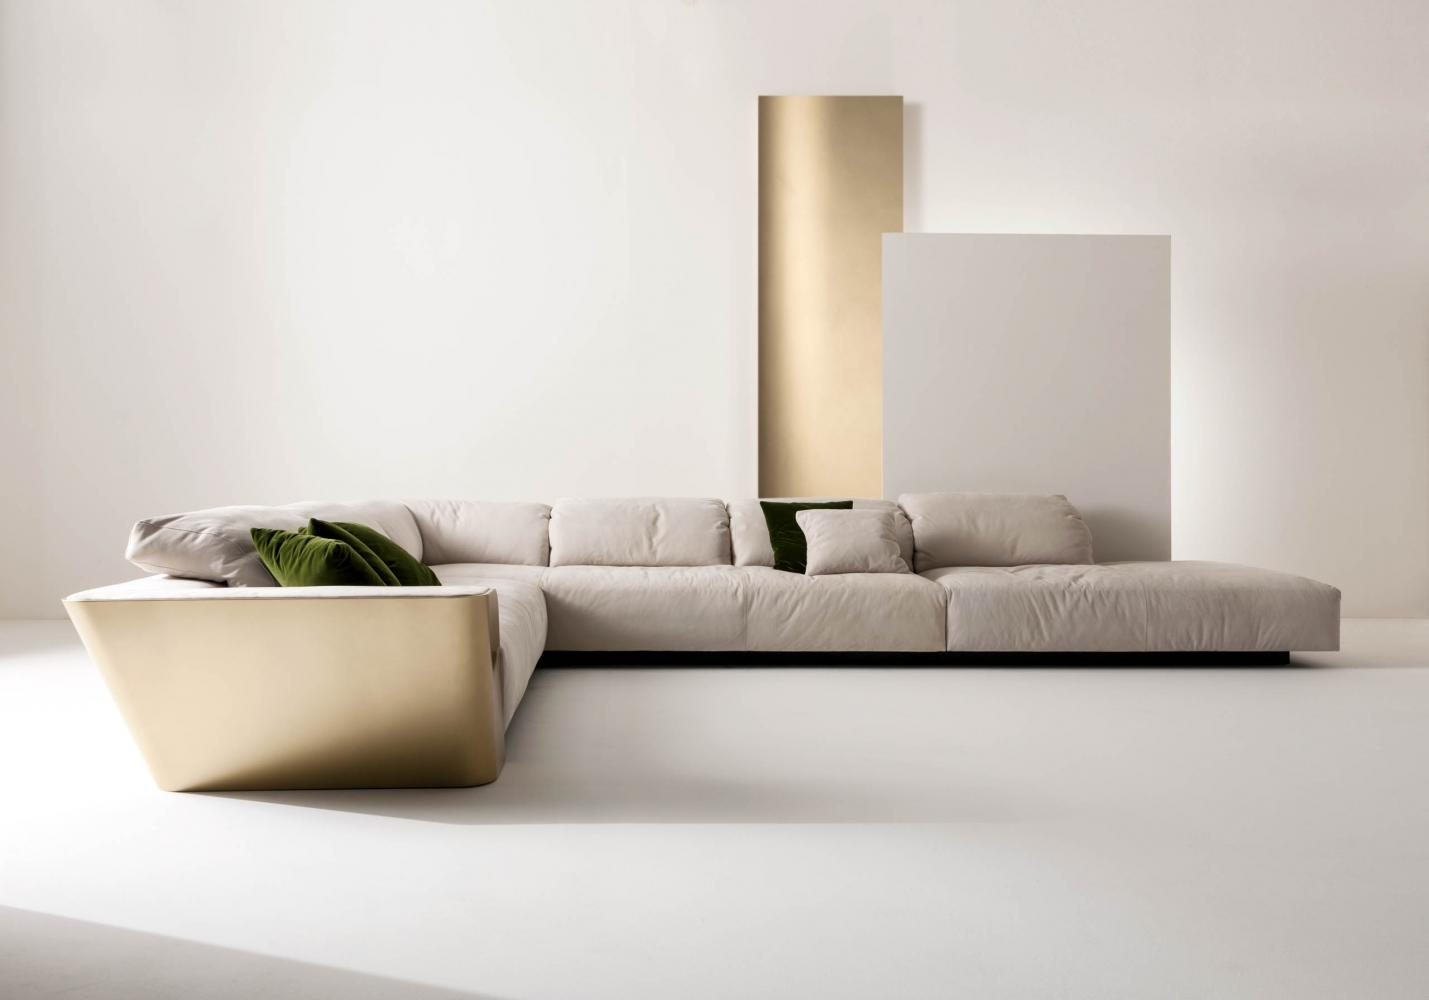 Metropol is a modular modern sofa in leather